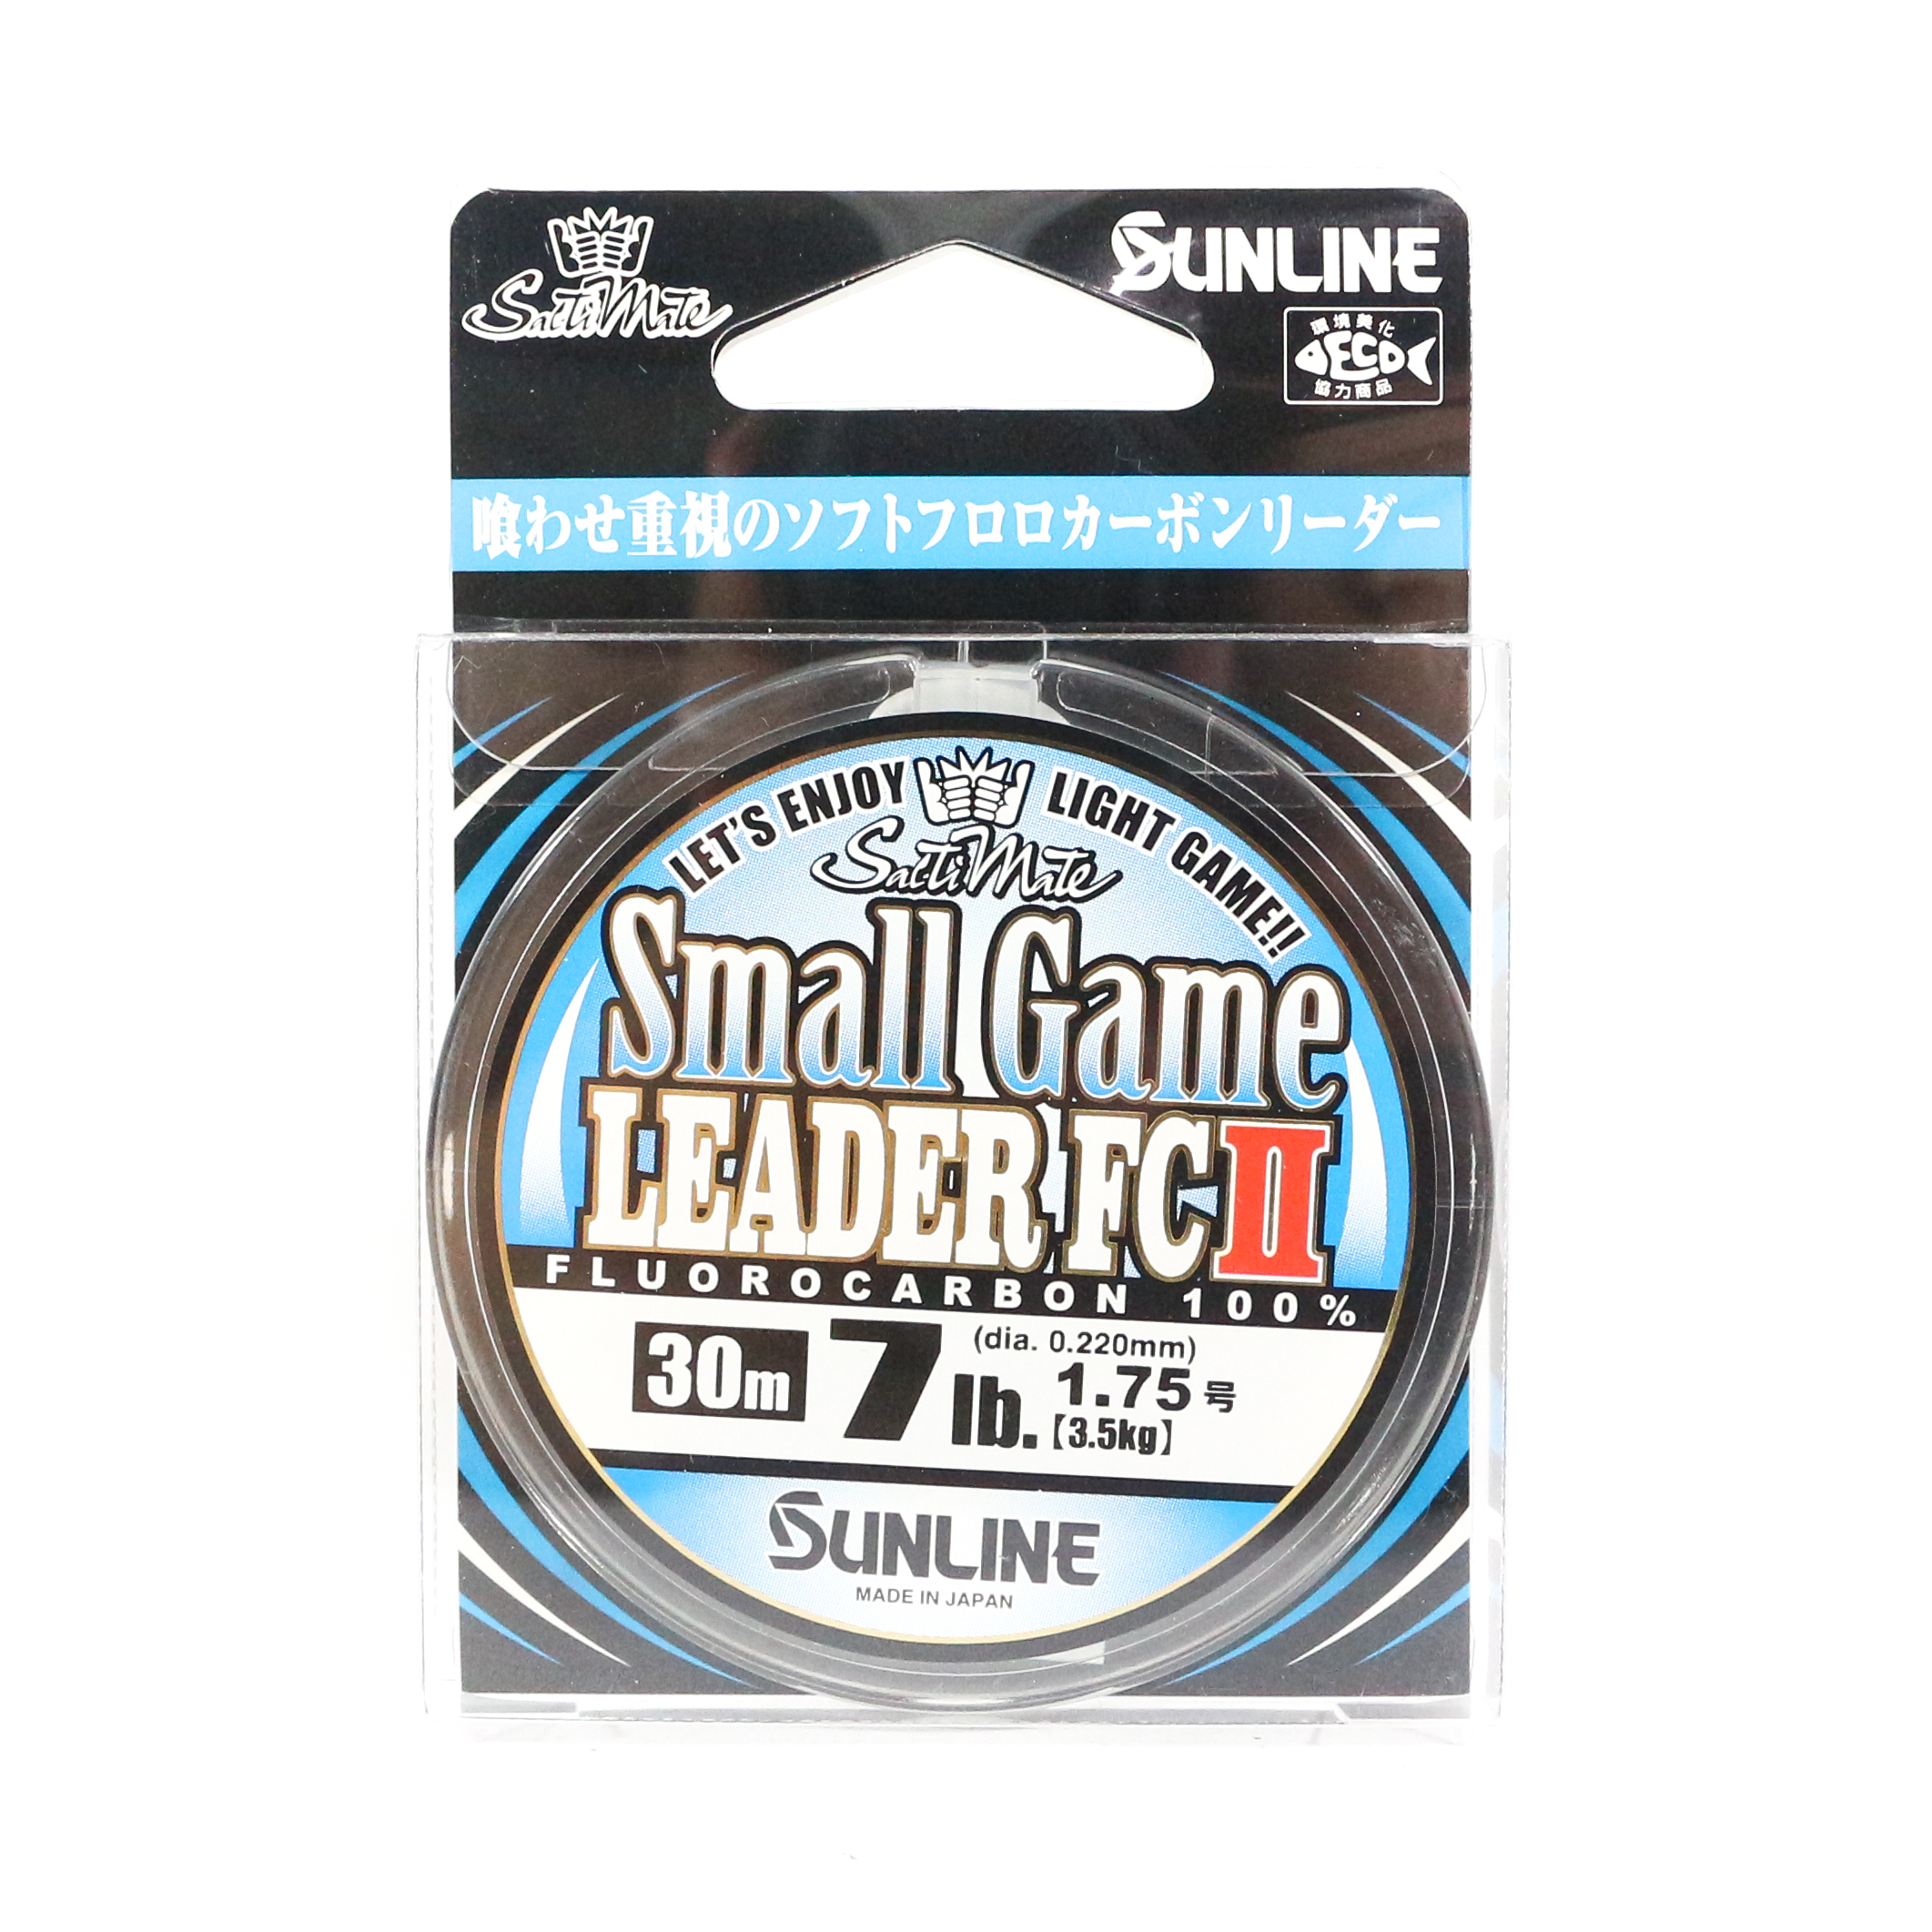 Sunline Fluorocarbon Small Game Leader FC II 30m 7lb (8003)